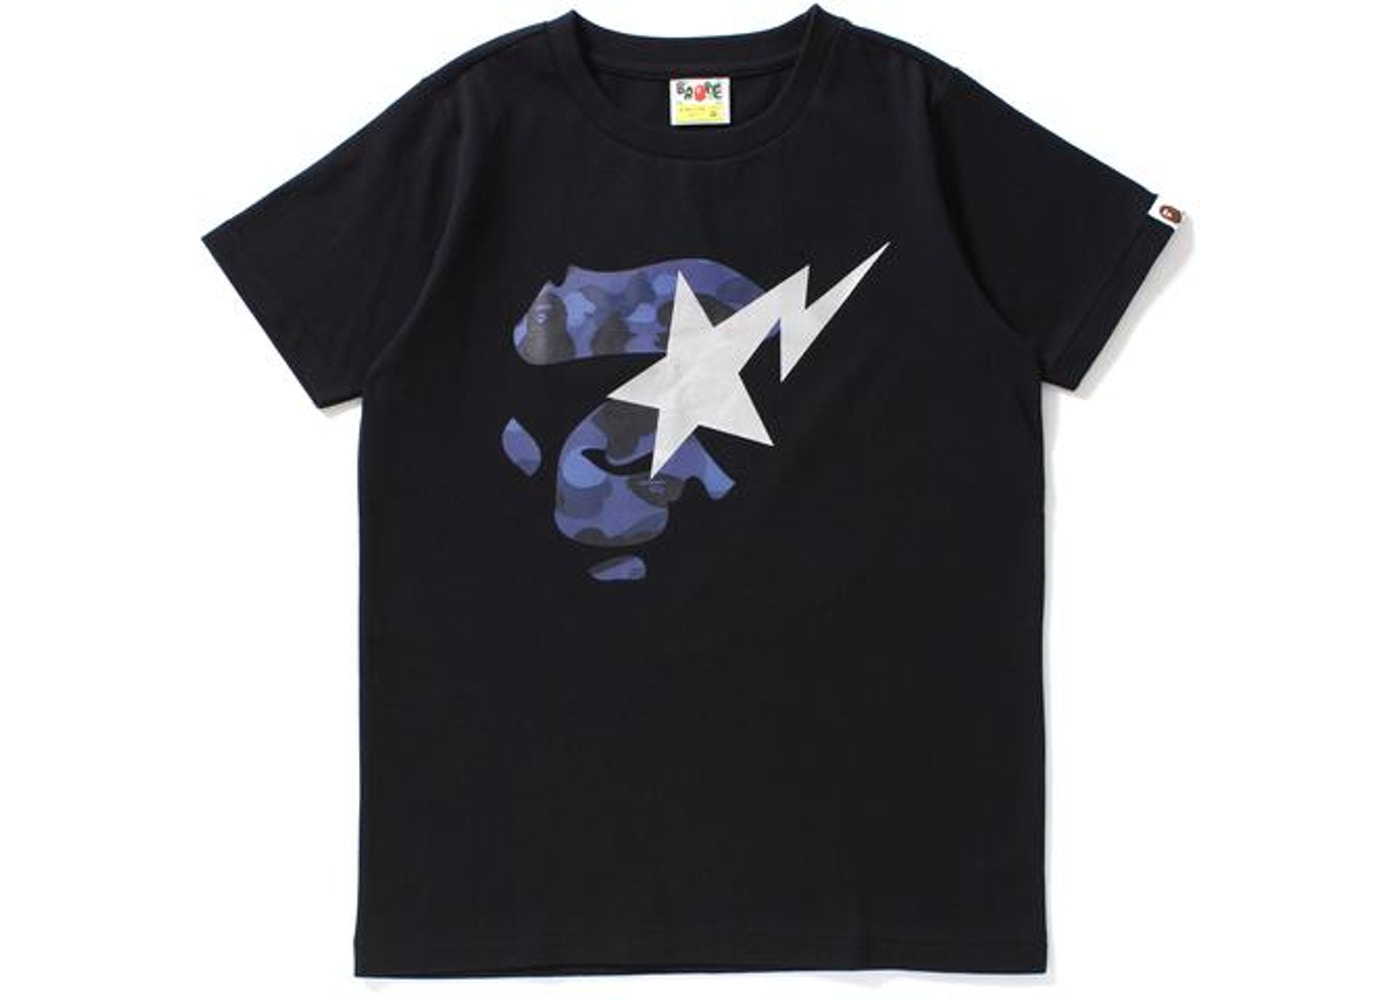 BAPE Color Camo Ape Face on Bapesta Tee Tee (Ladies) Black Navy - 9ef328938